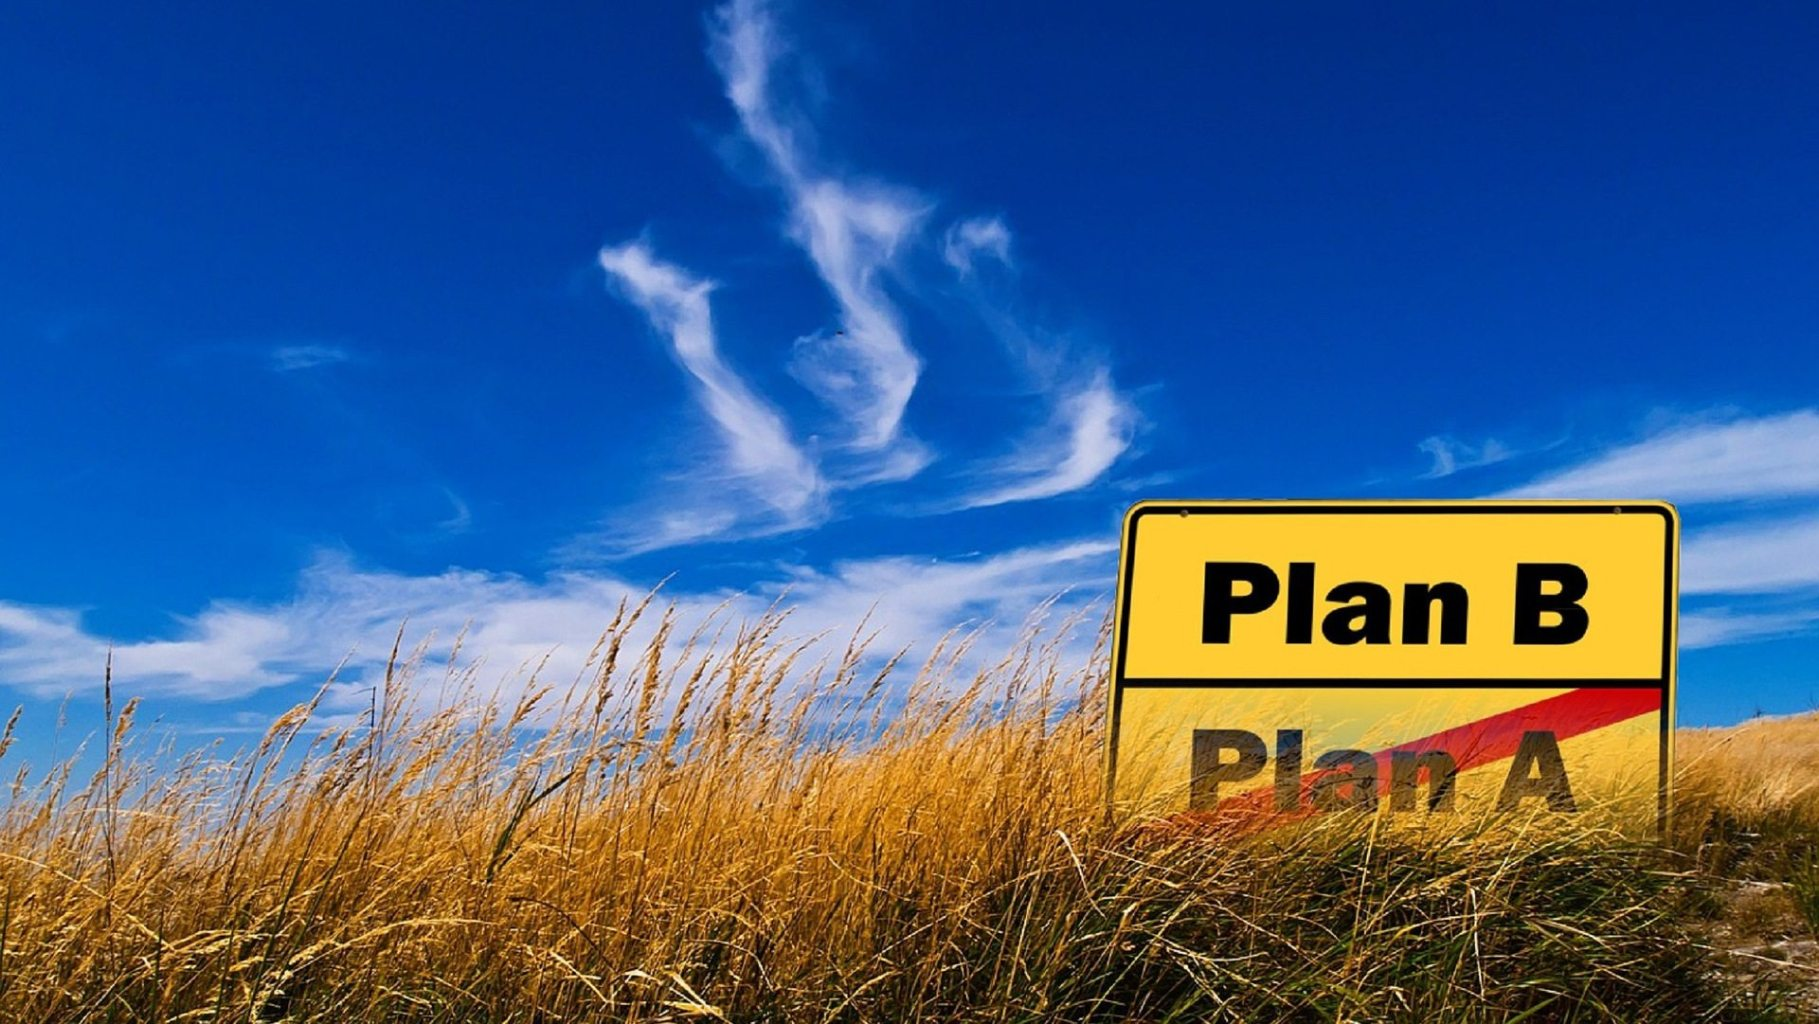 Image: Plan A and Plan B sign